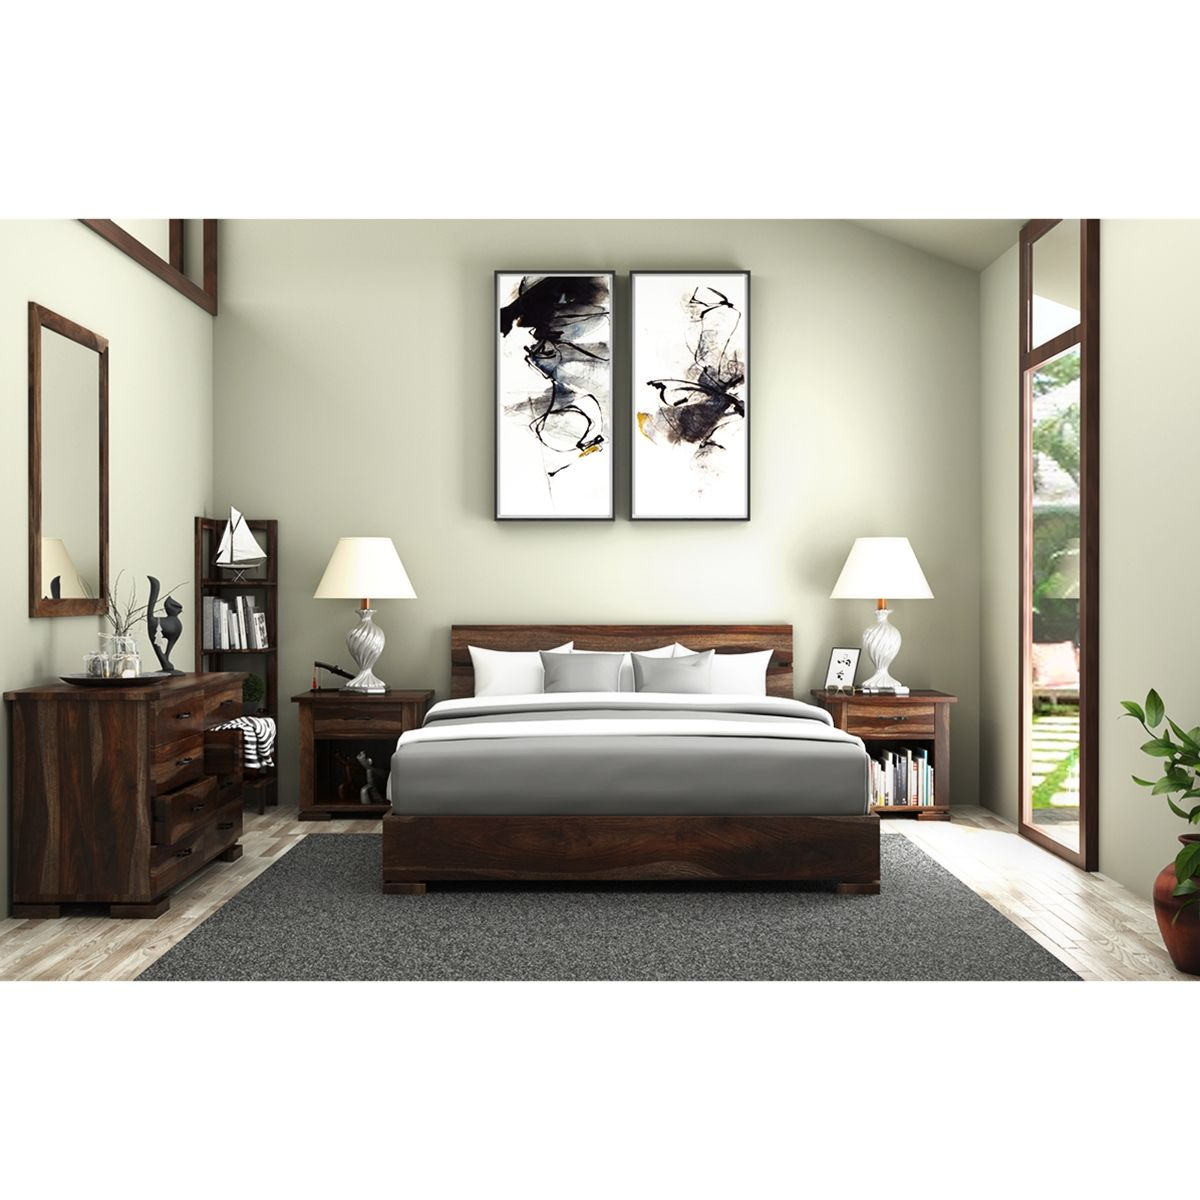 Athena Solid Wood Platform Bed 5 Piece Bedroom Furniture Set